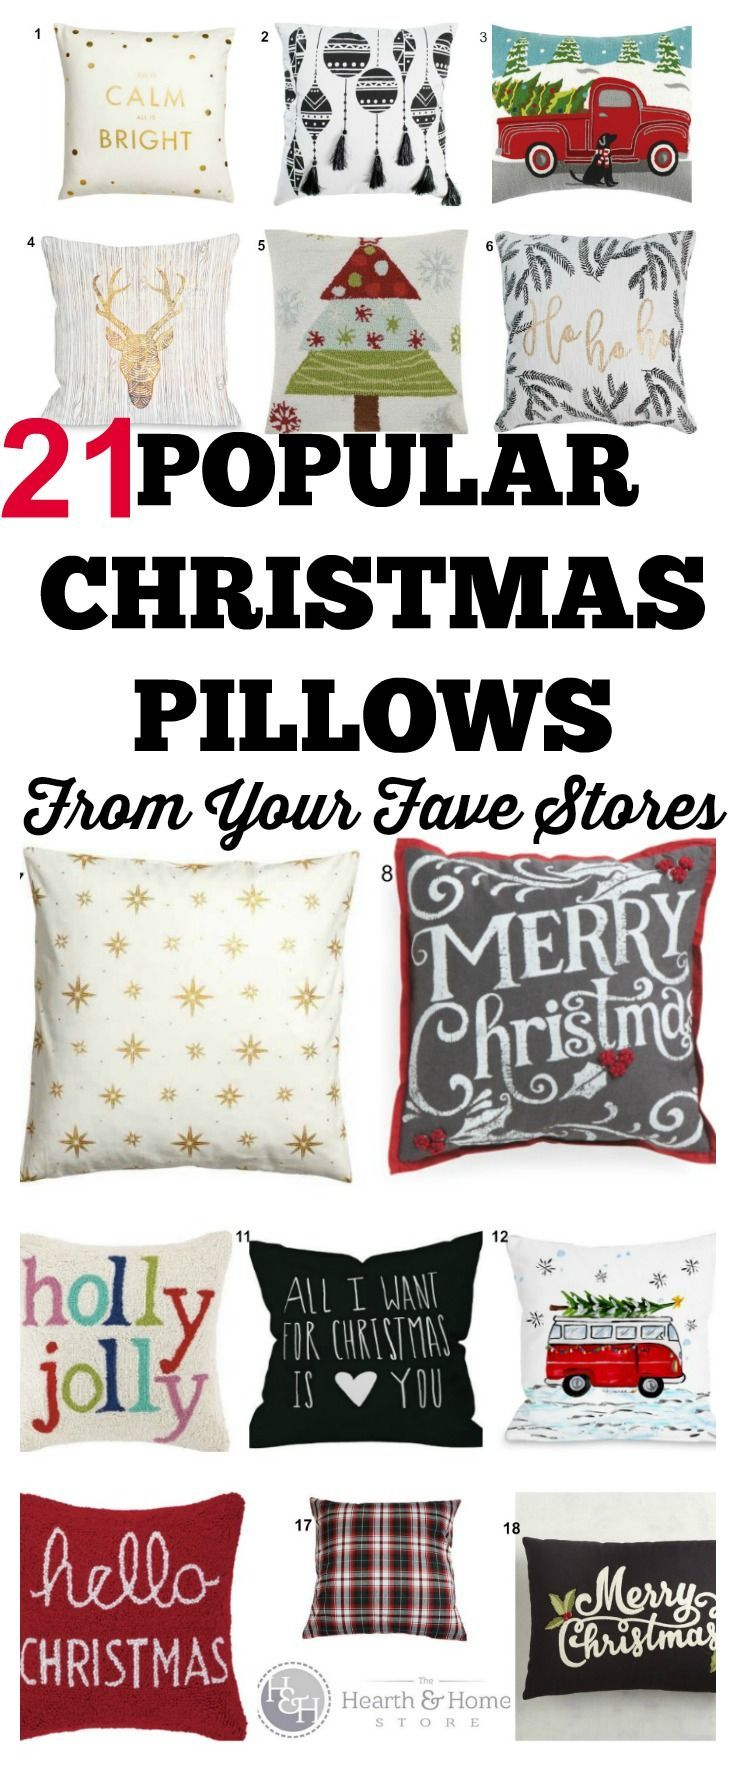 Pillows On Sale At Target 21 Of The Hottest Christmas Pillows By Your Favorite Shops All